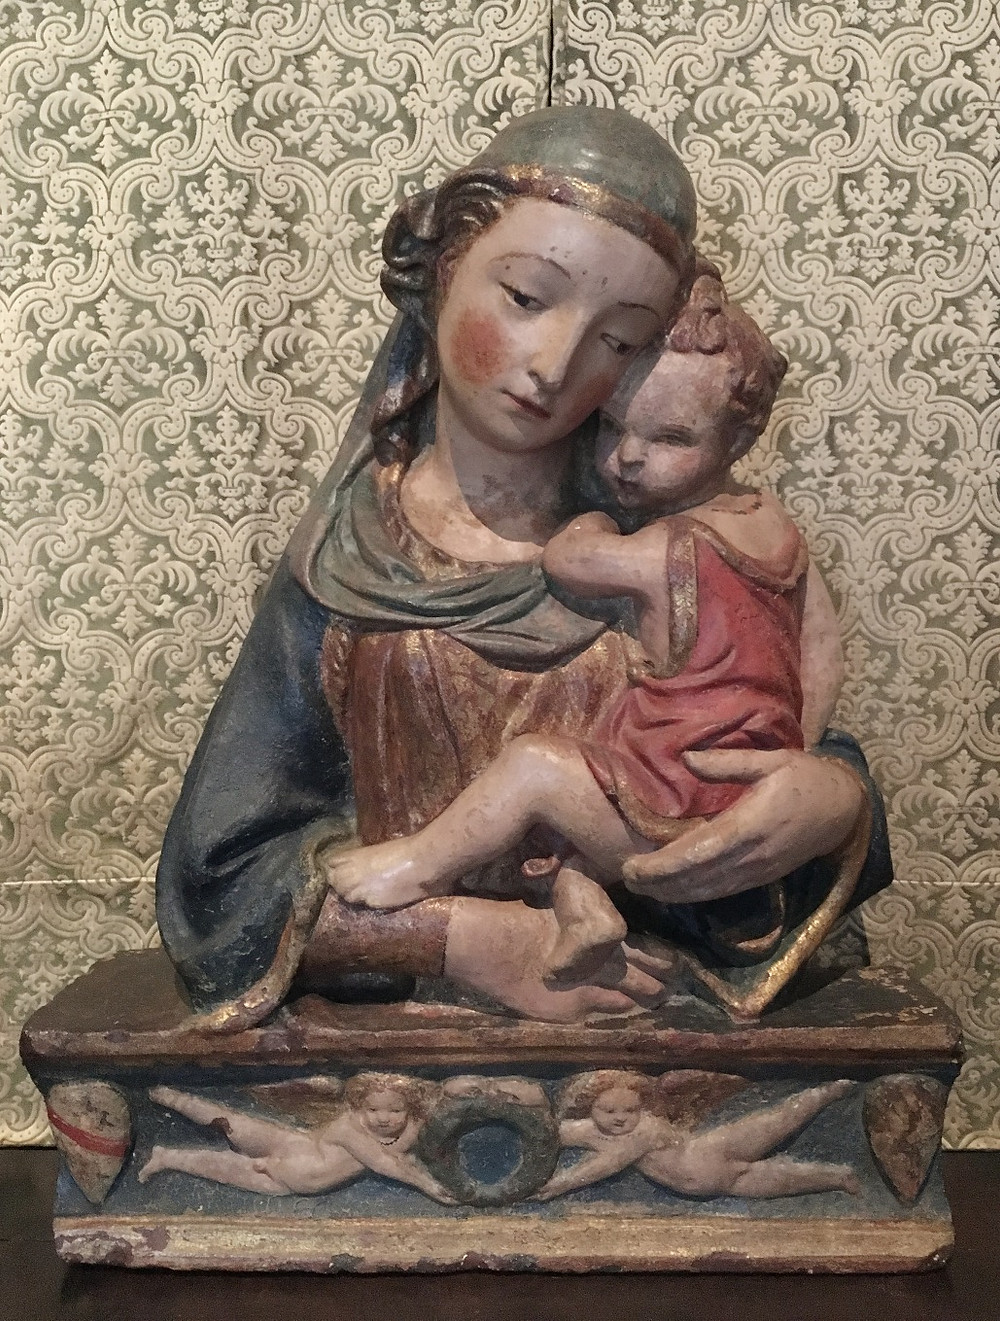 Madonna and Child by Lorenzo Ghiberti. Photo by Diana Dinverno.